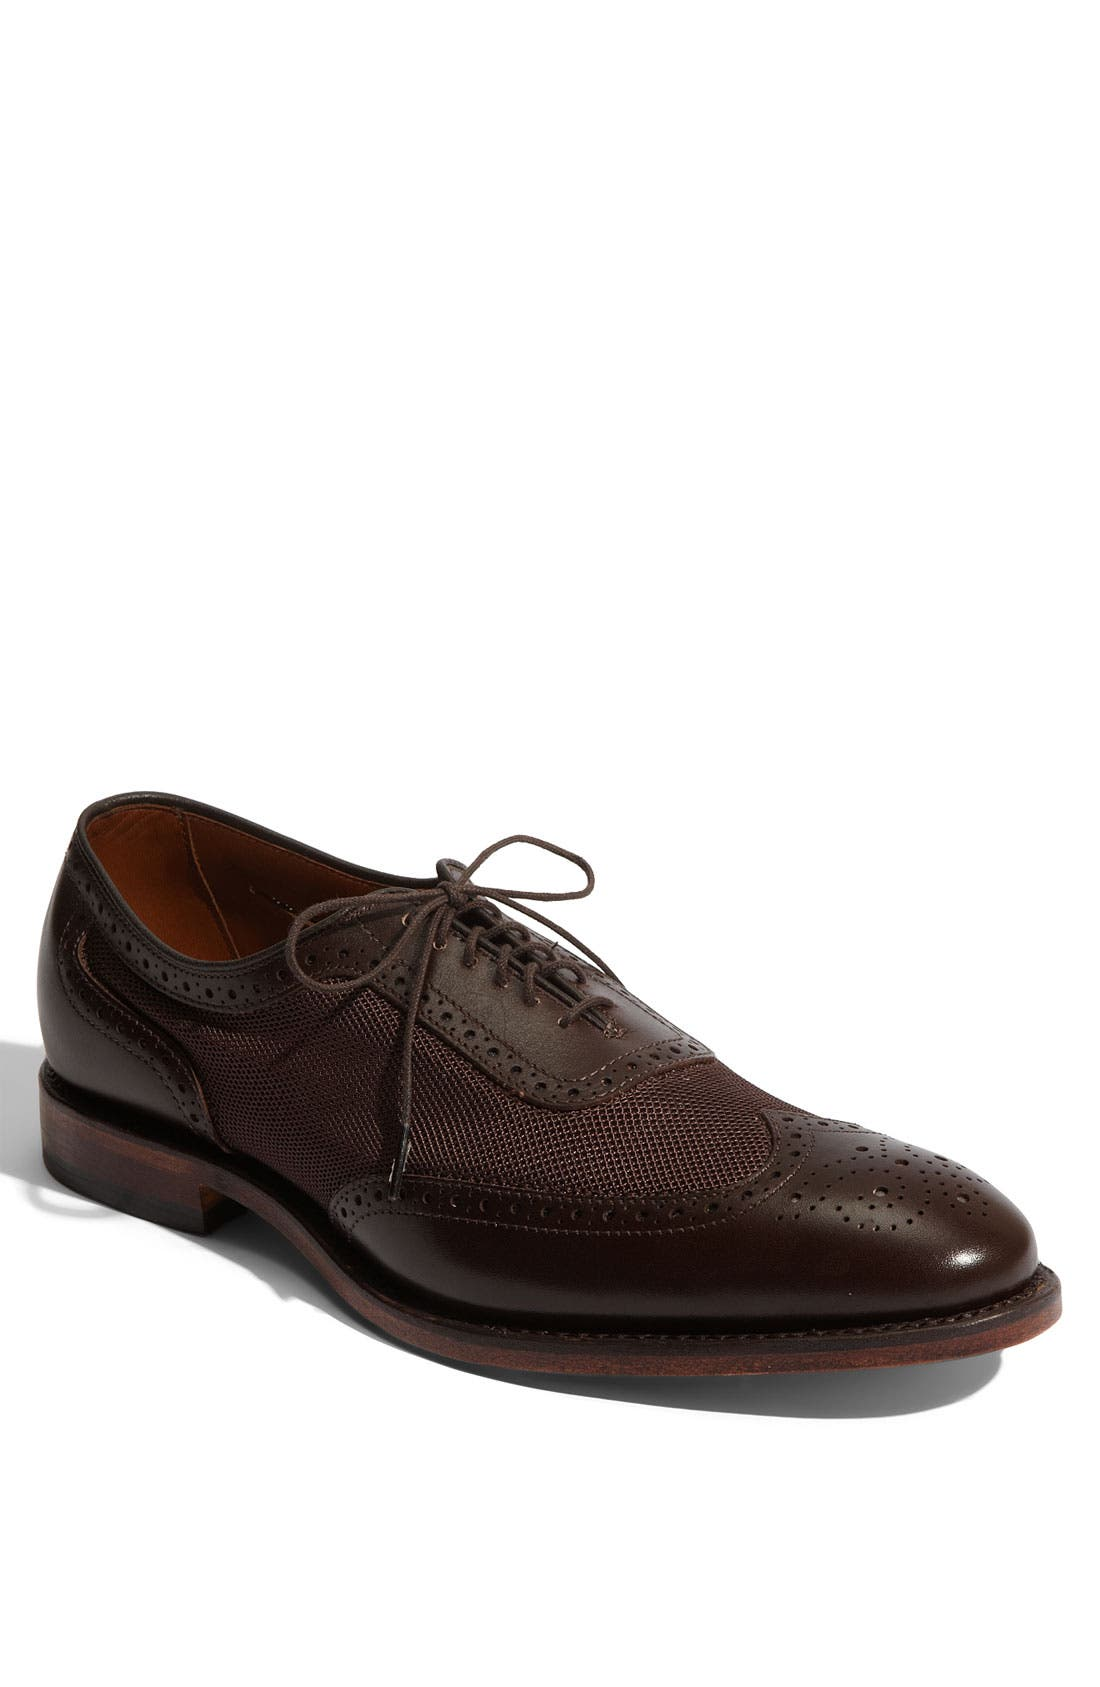 Main Image - Allen Edmonds 'Strawfut' Oxford